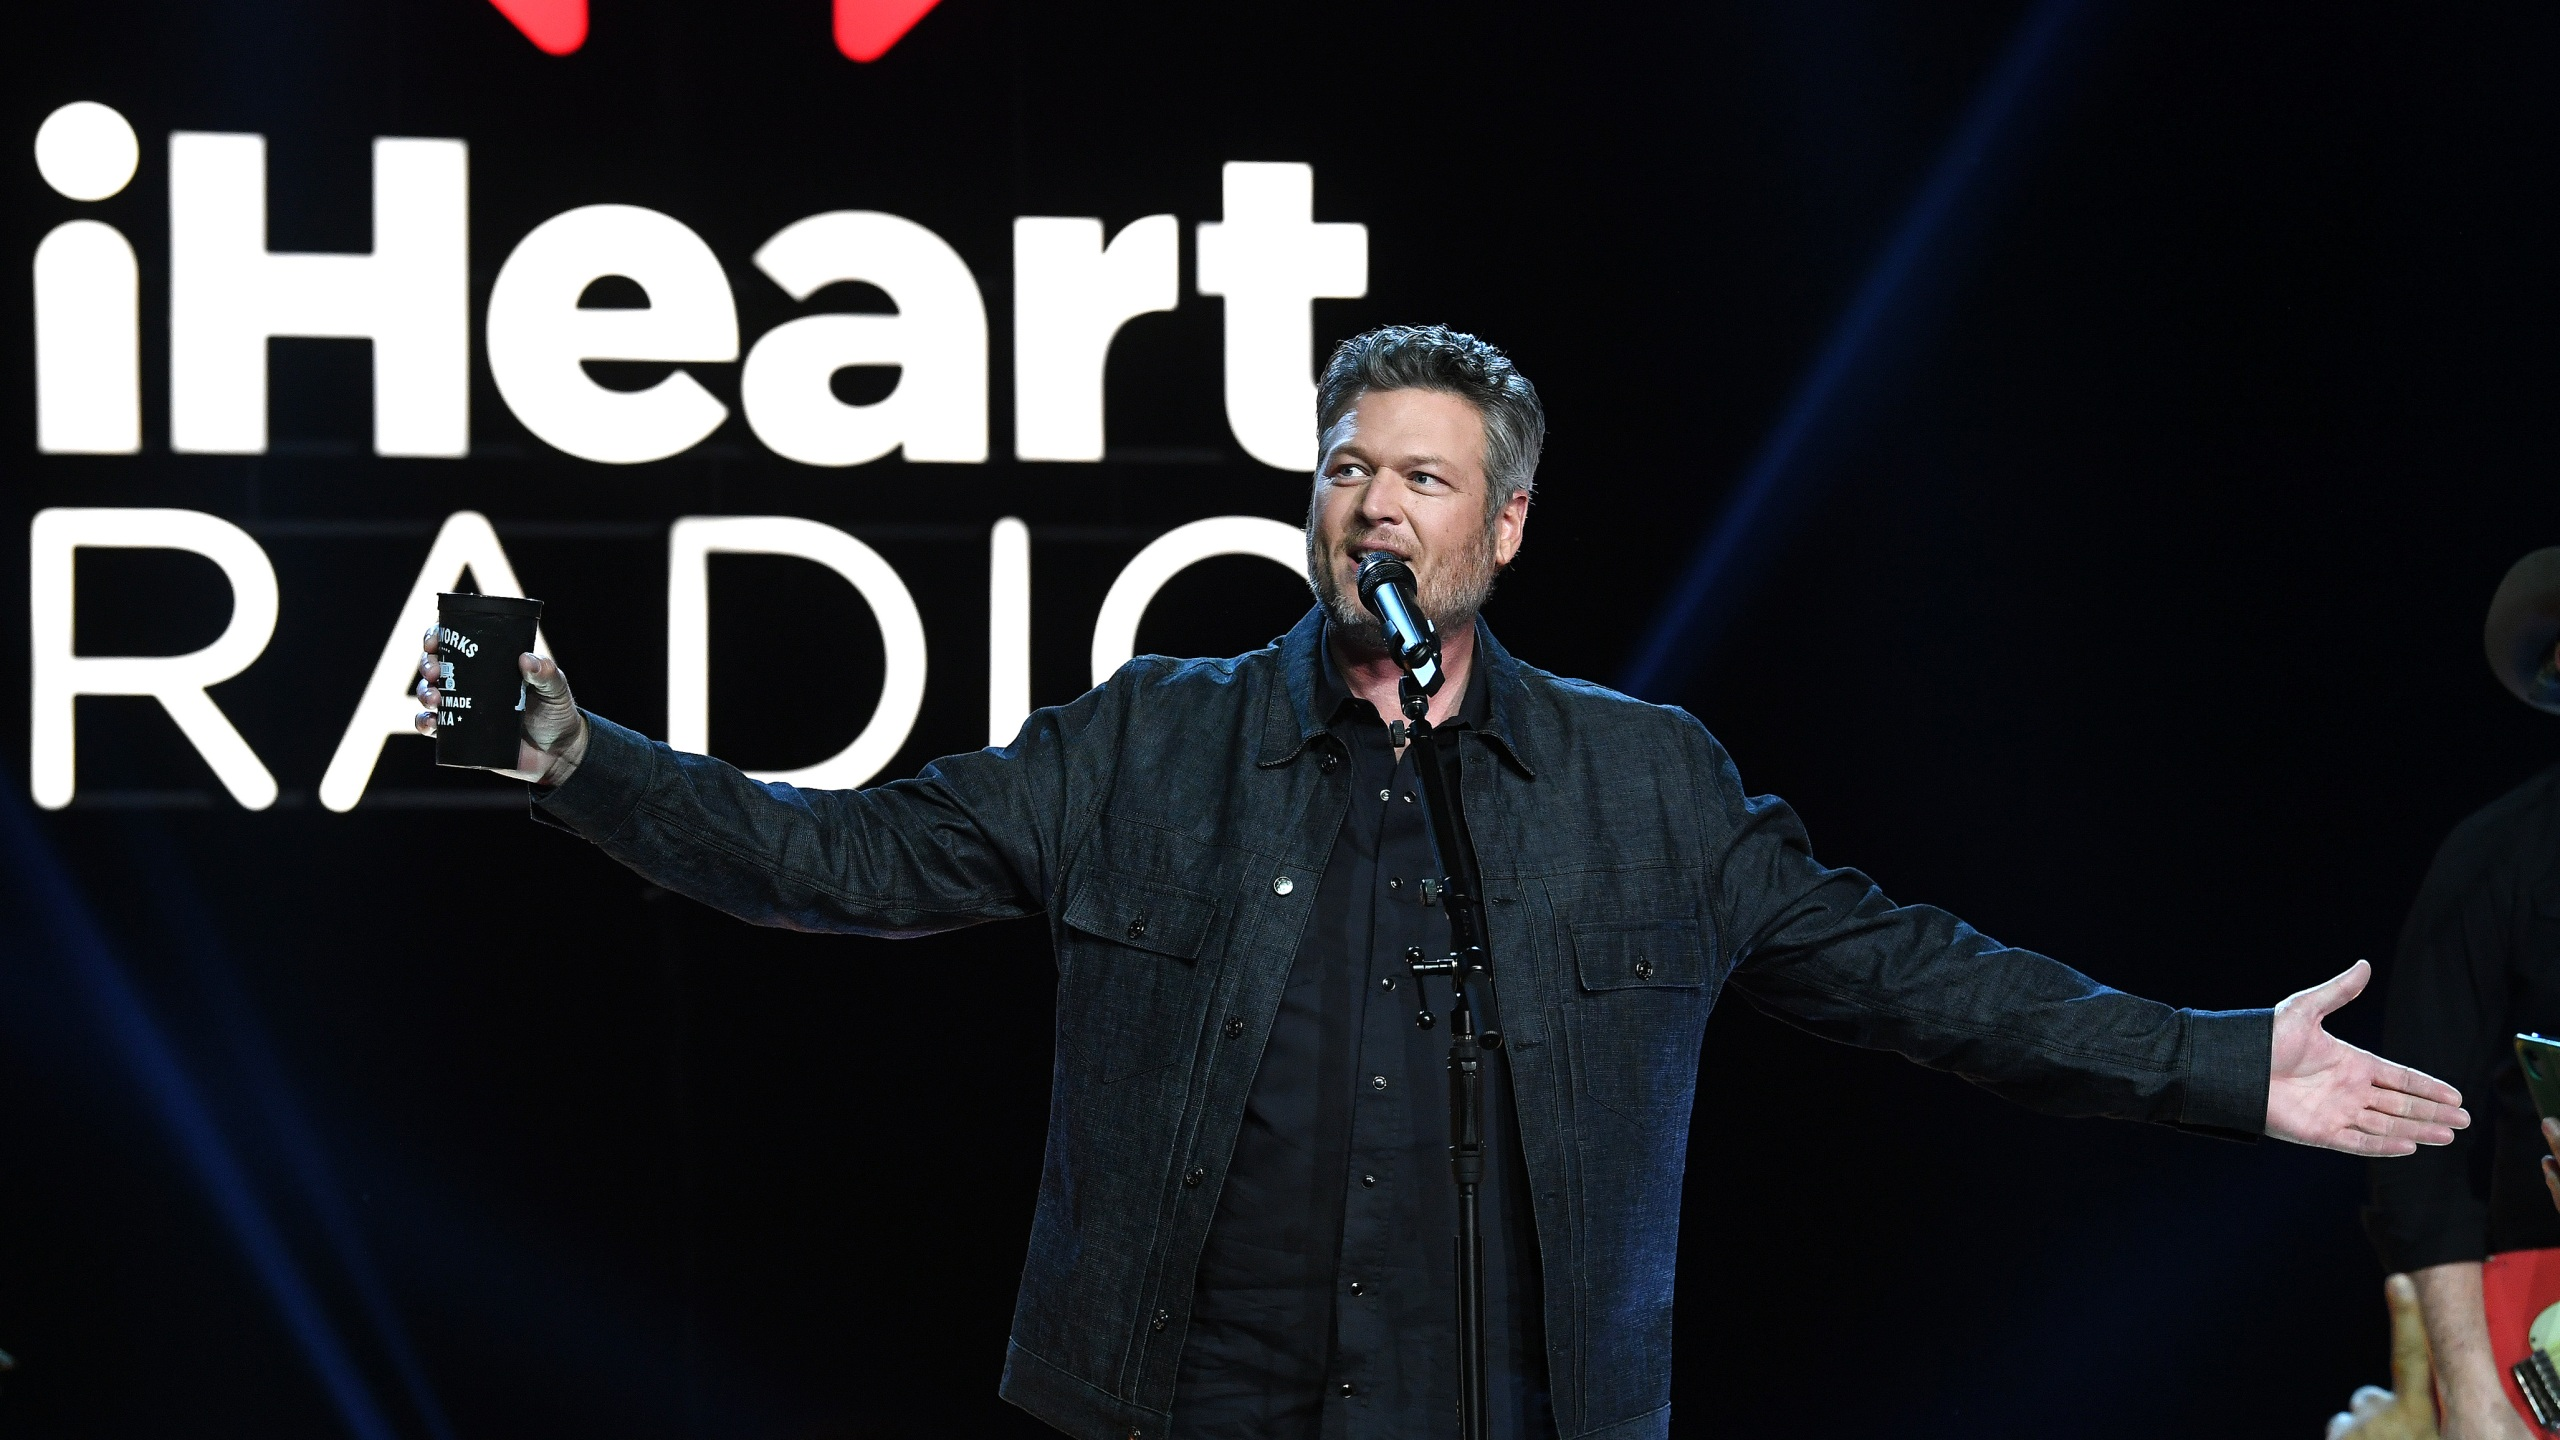 BURBANK, CALIFORNIA - DECEMBER 12: Blake Shelton performs live on stage at iHeartCountry Album Release Party with Blake Shelton at iHeartRadio Theater on December 12, 2019 in Burbank, California. (Photo by Kevin Winter/Getty Images for iHeart)